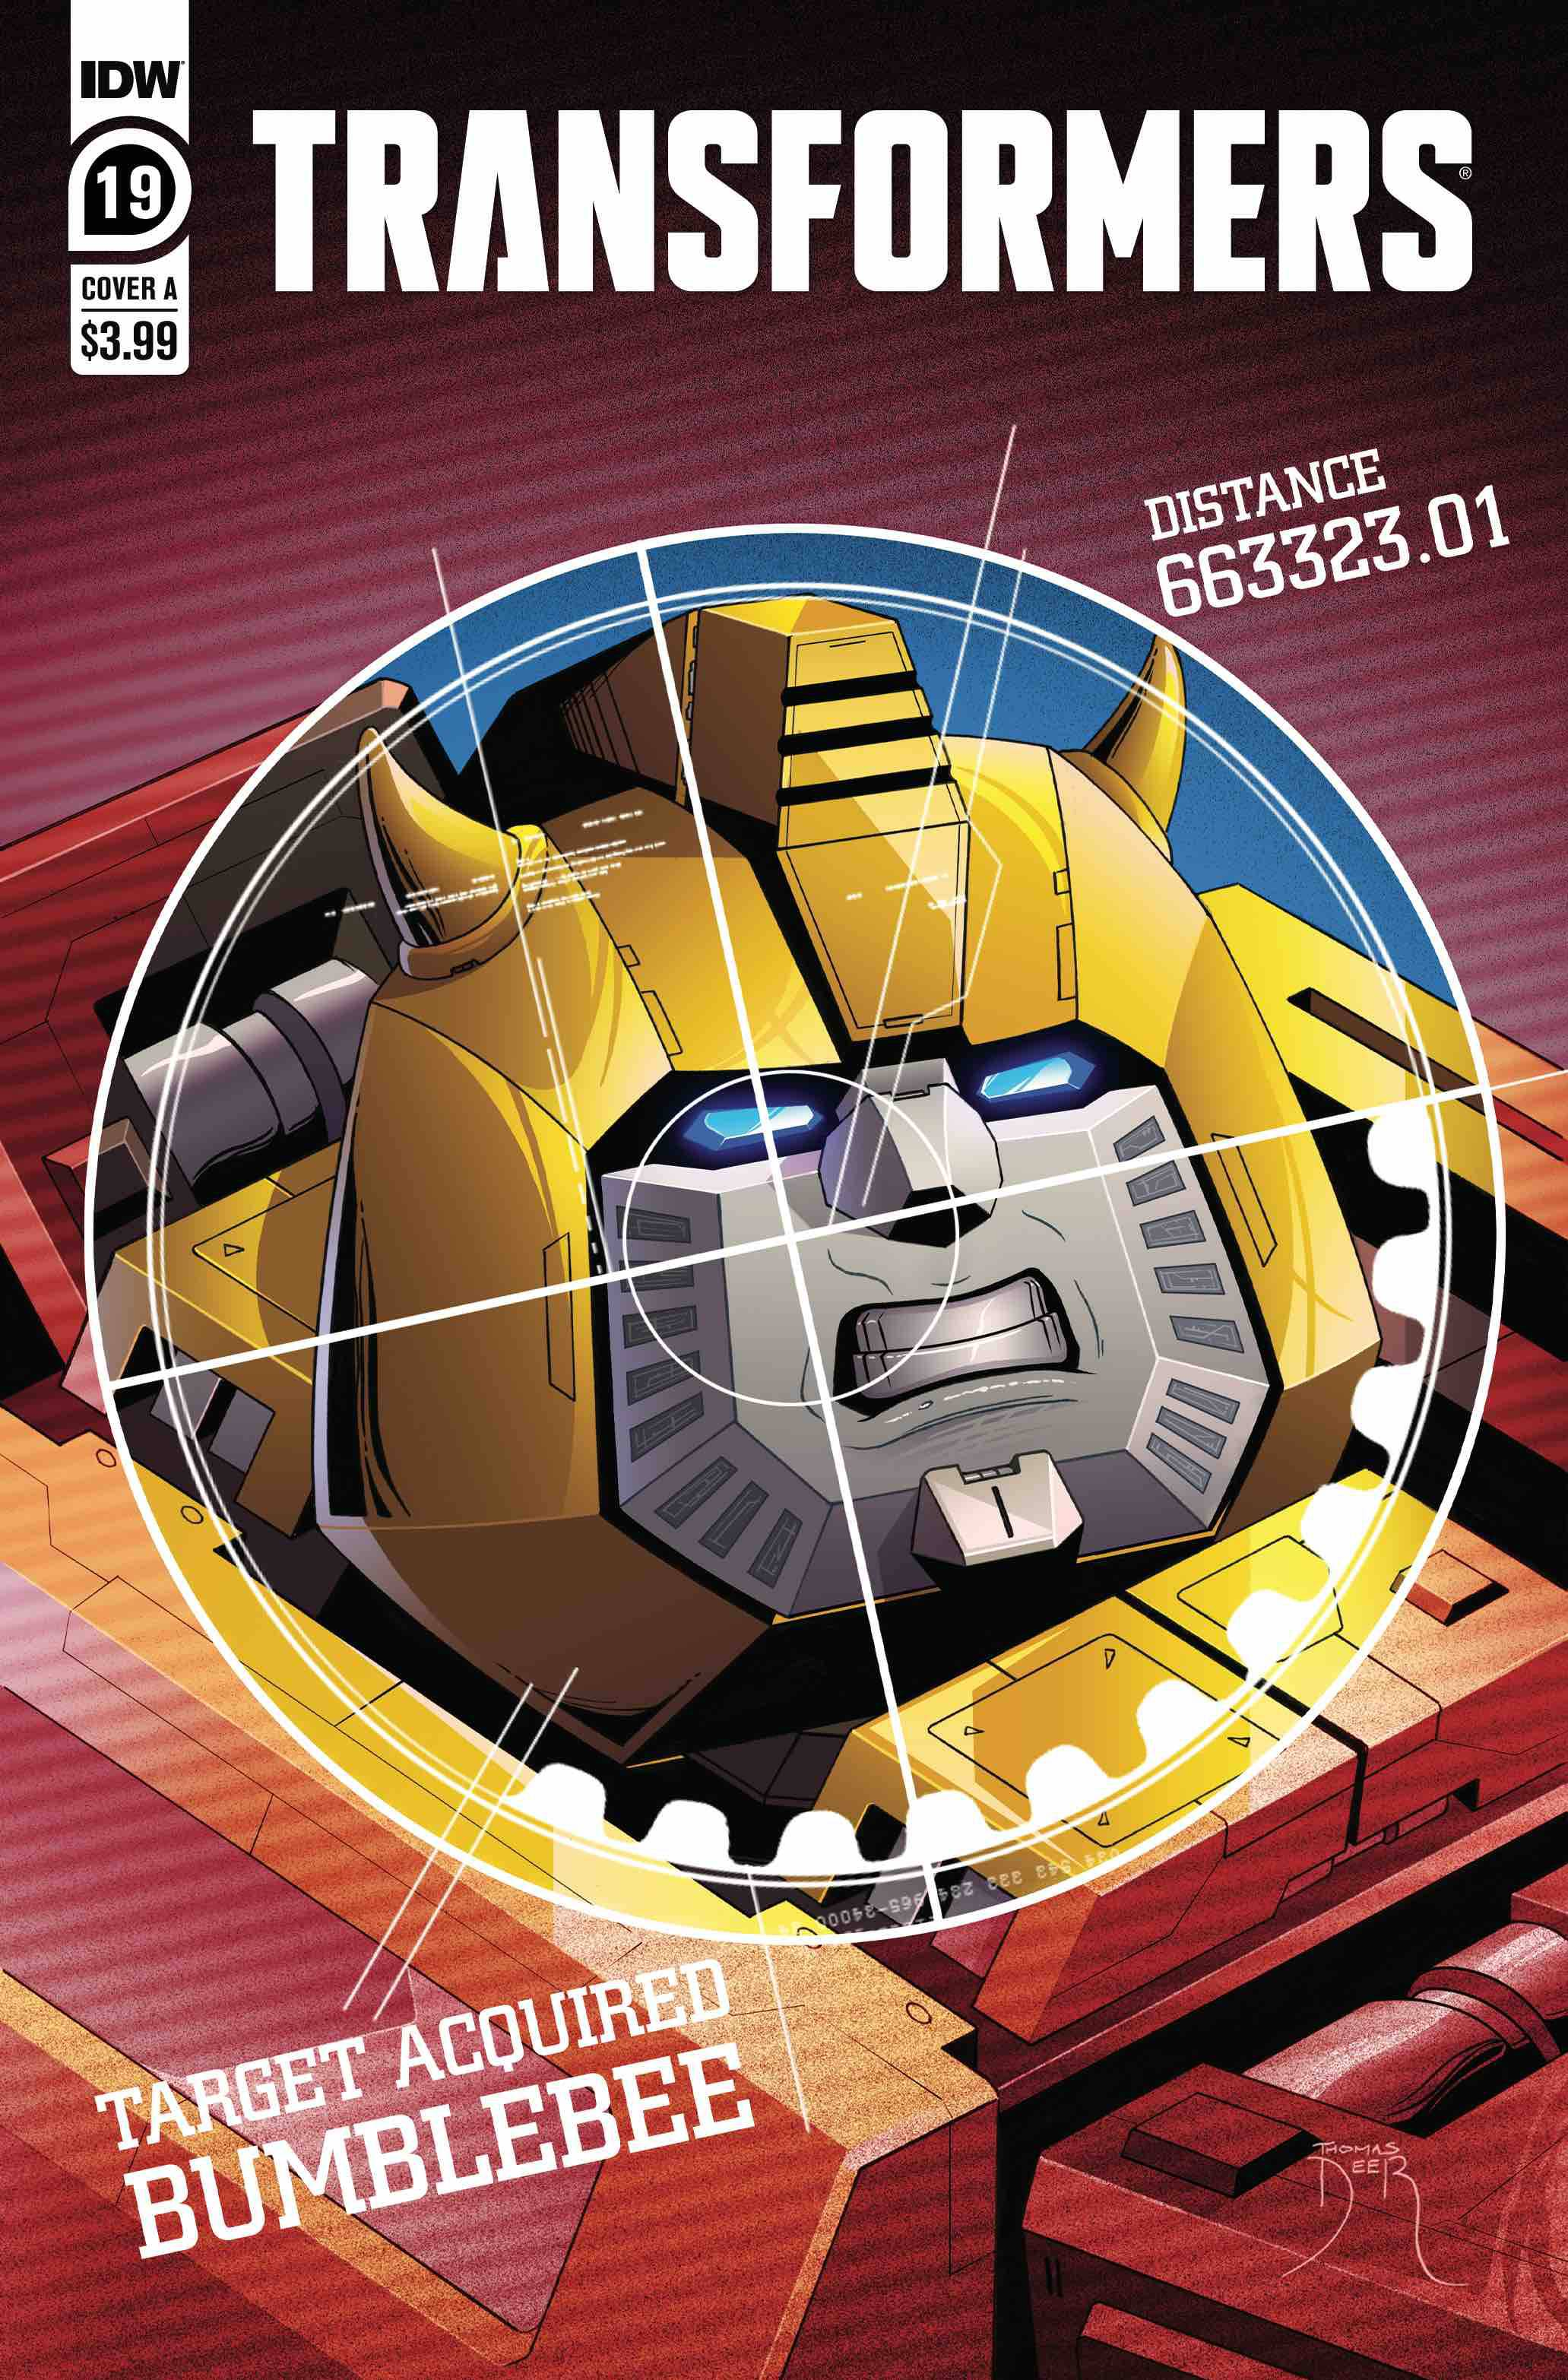 Transformers #19 (2020)